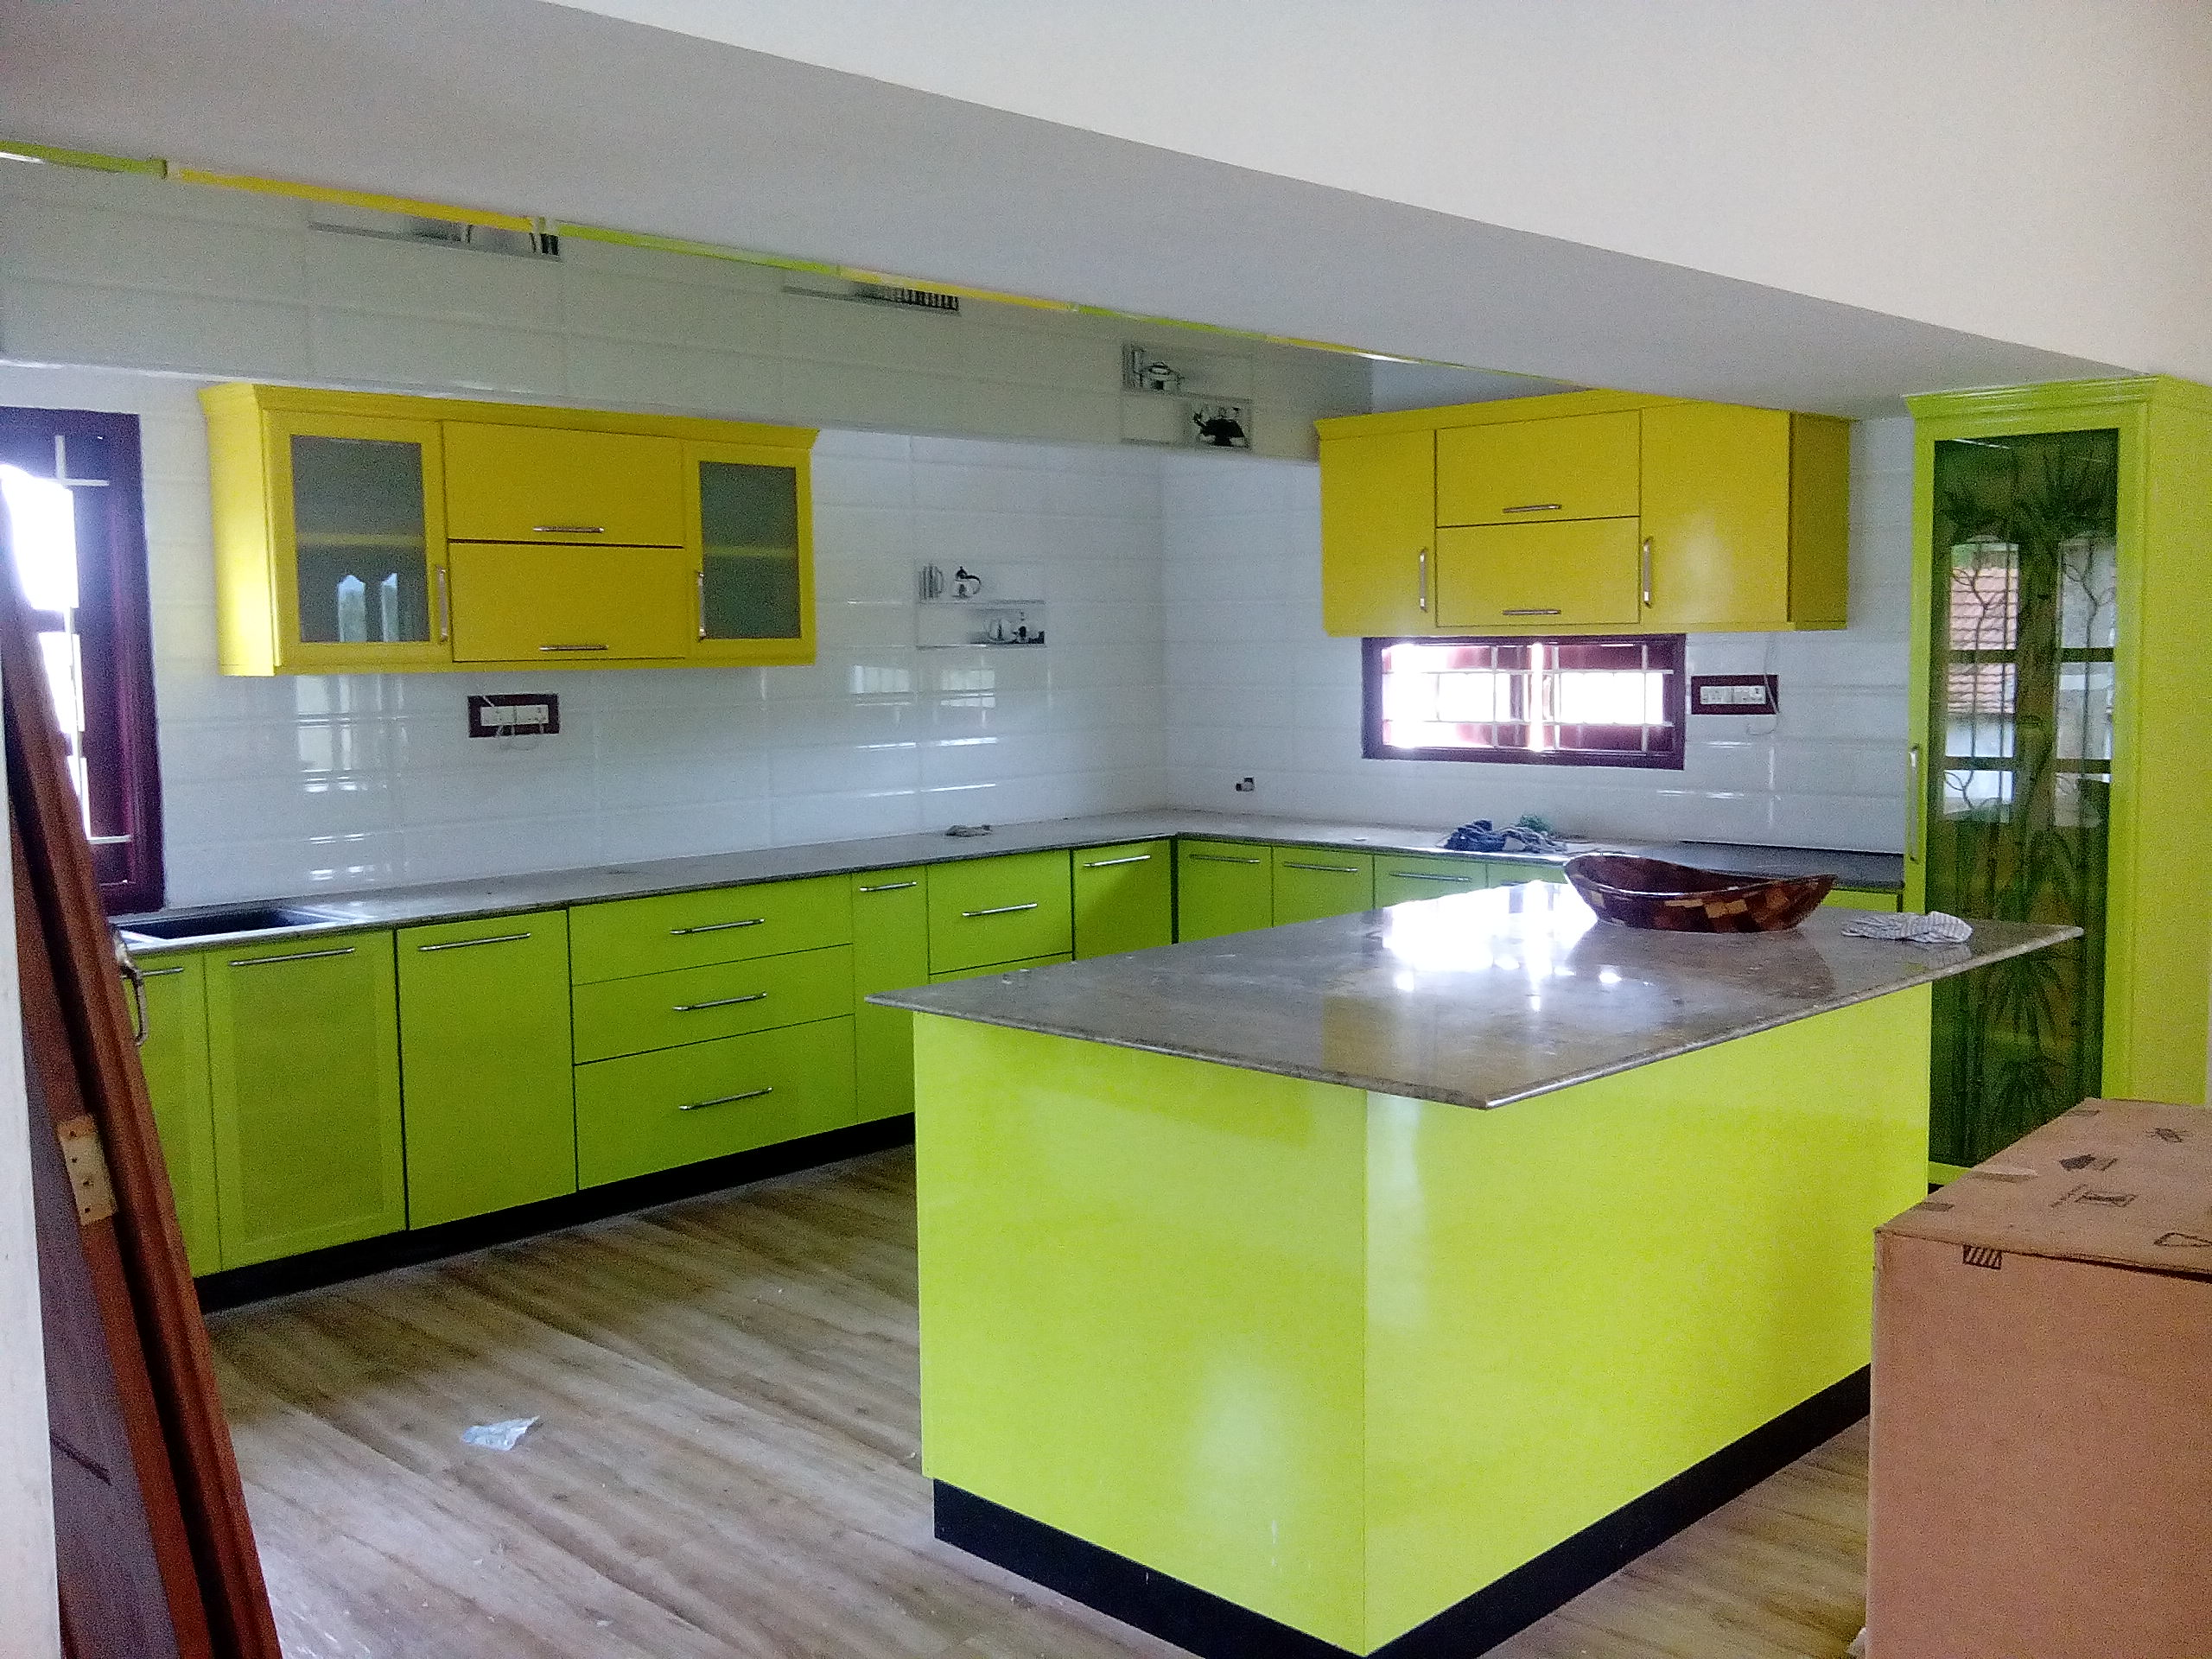 Modular kitchen is made as pre-made cabinets they can be assembled & reassembled according to the space usage need of the customer make your normal kitchen into a SMART KITCHEN WITH SMART INTERIORS